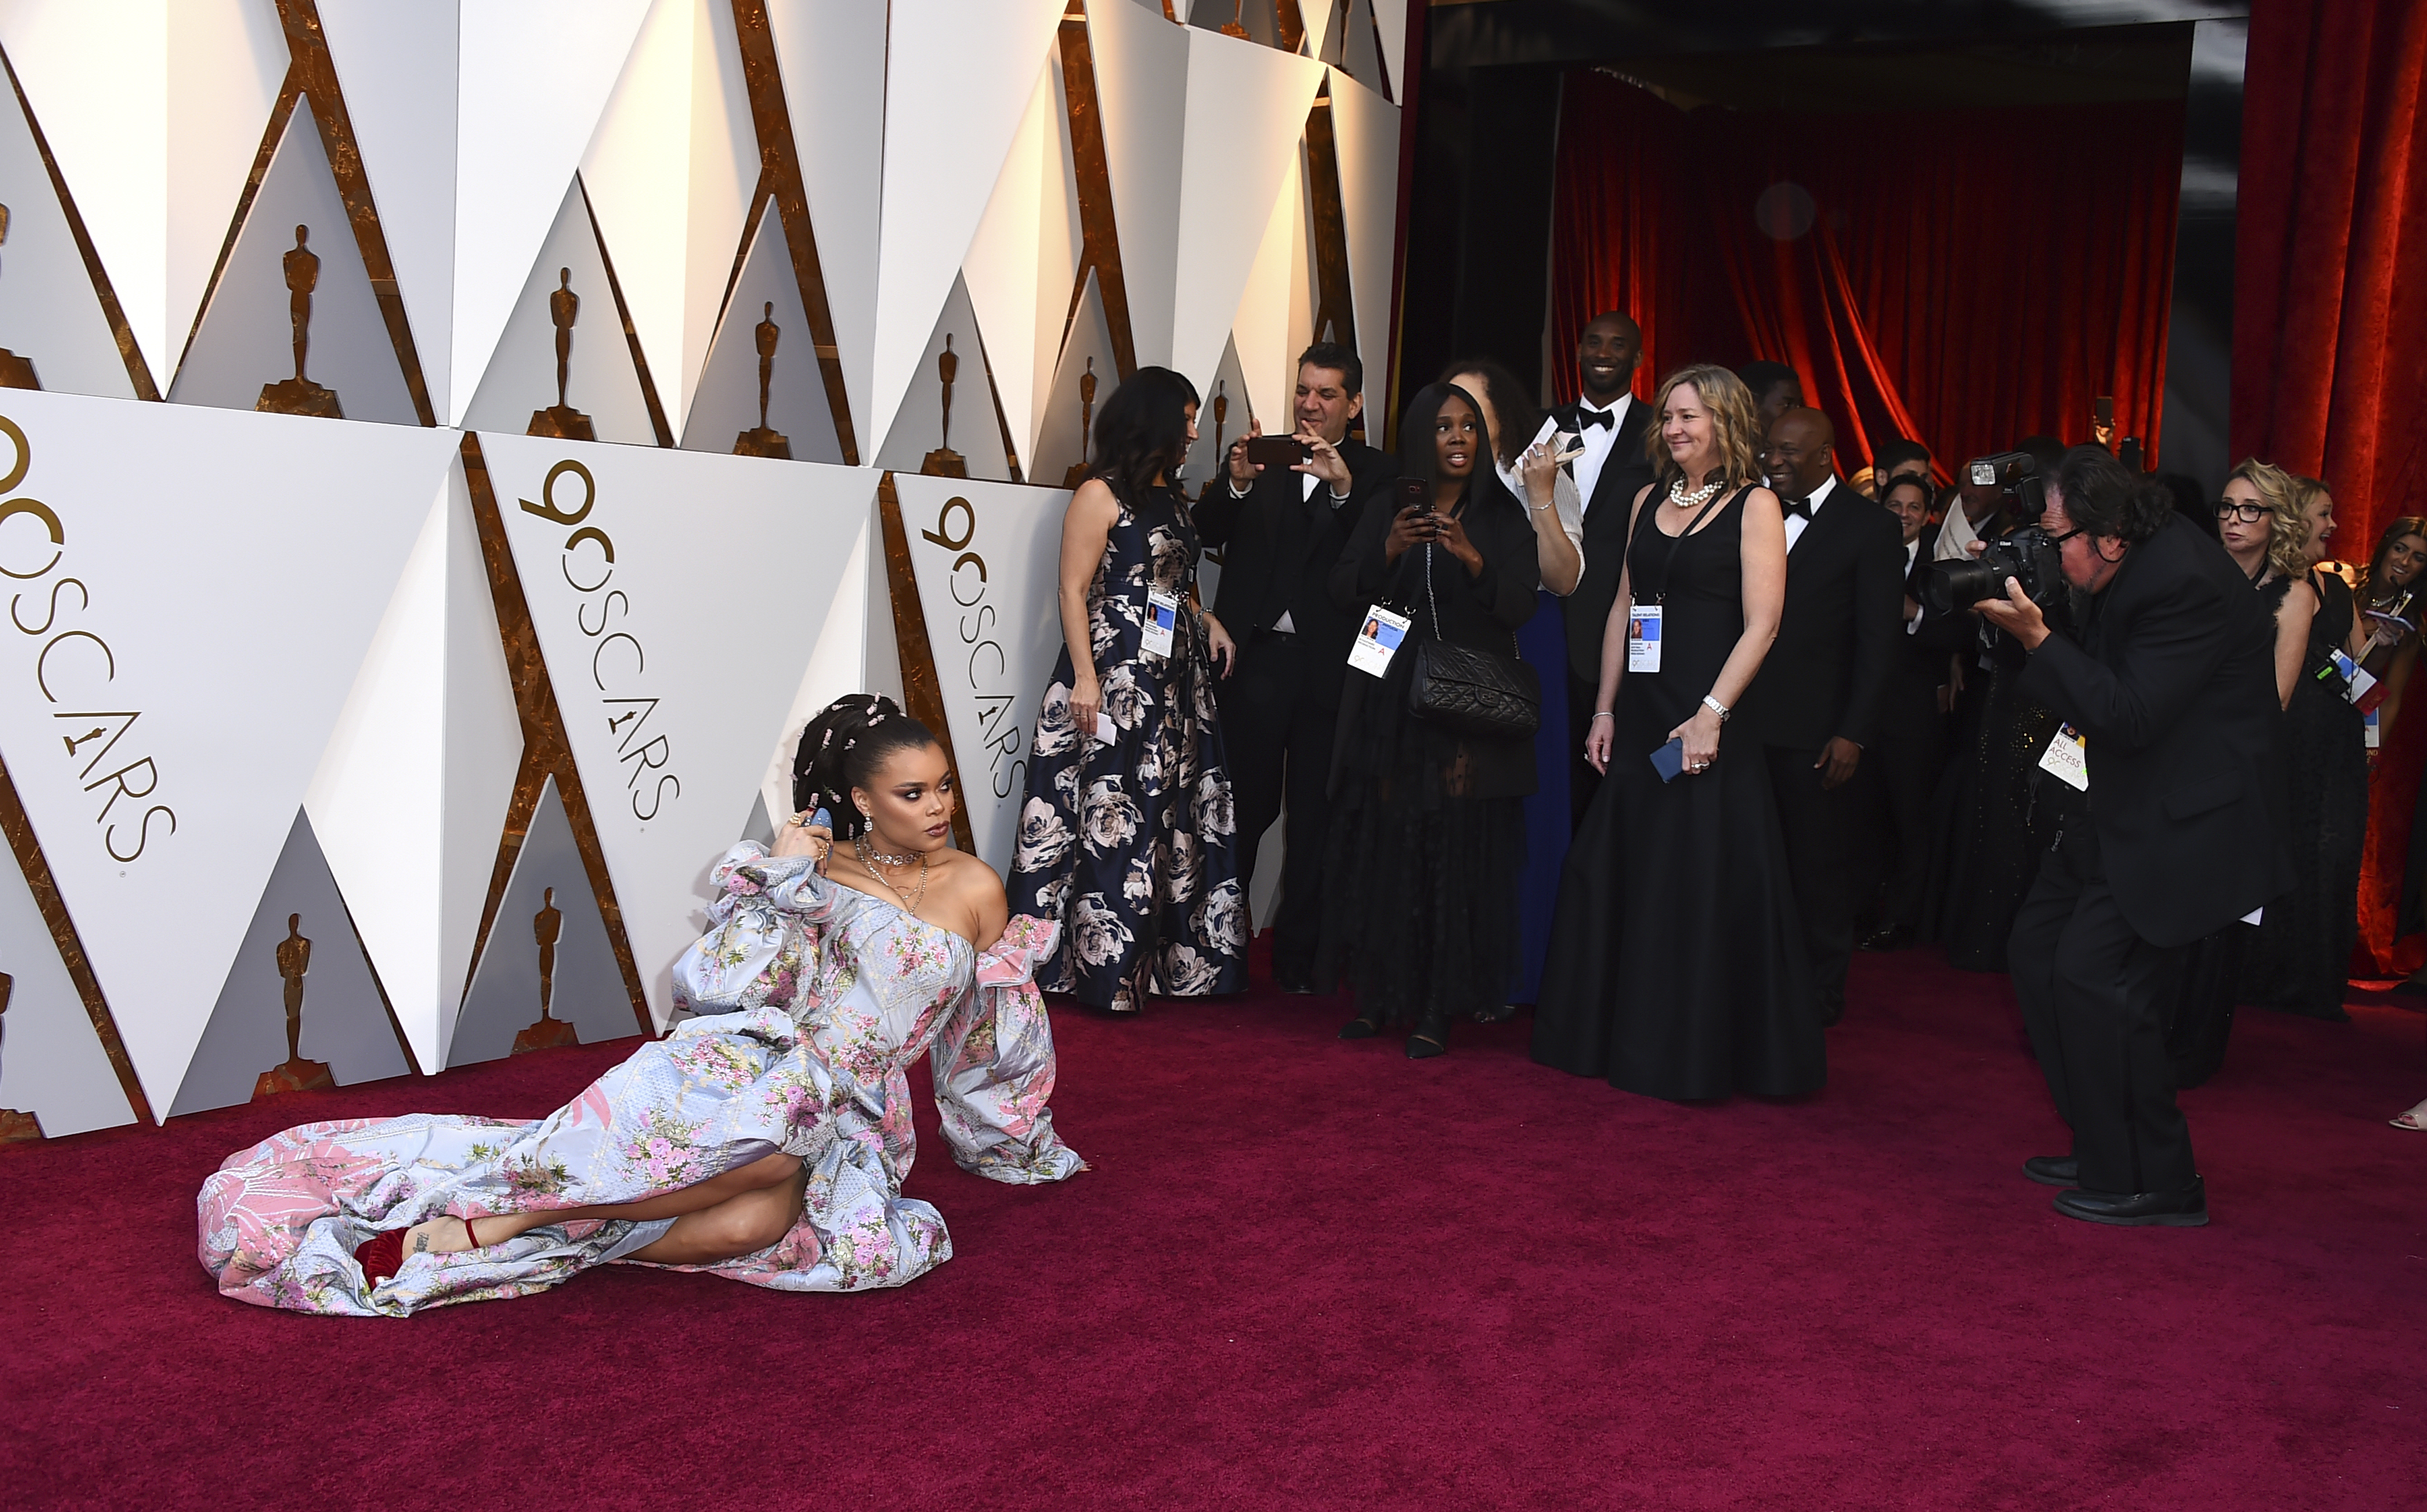 "<div class=""meta image-caption""><div class=""origin-logo origin-image none""><span>none</span></div><span class=""caption-text"">Andra Day arrives at the Oscars on Sunday, March 4, 2018, at the Dolby Theatre in Los Angeles. (Jordan Strauss/Invision/AP)</span></div>"